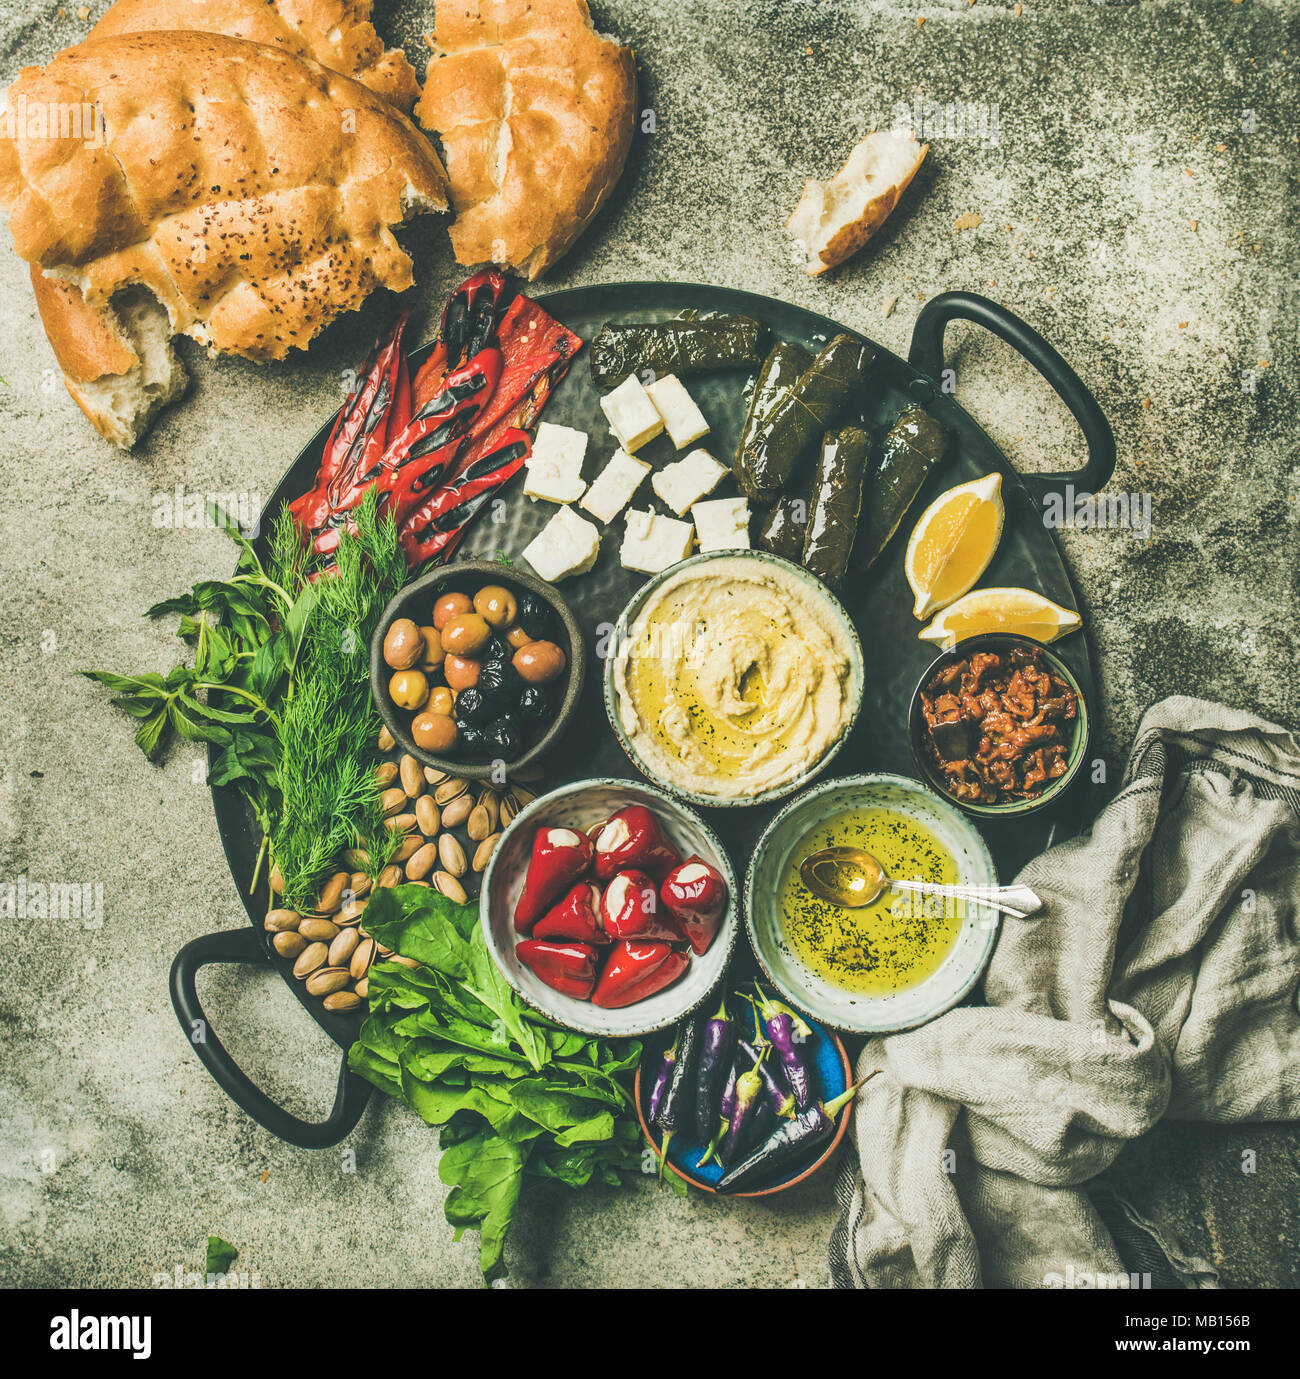 Mediterranean, Middle Eastern meze starters platter. Flat-lay of stuffed pickled paprikas, cheese, dolma, hummus, spiced oil, olives, sundried tomatoe - Stock Image